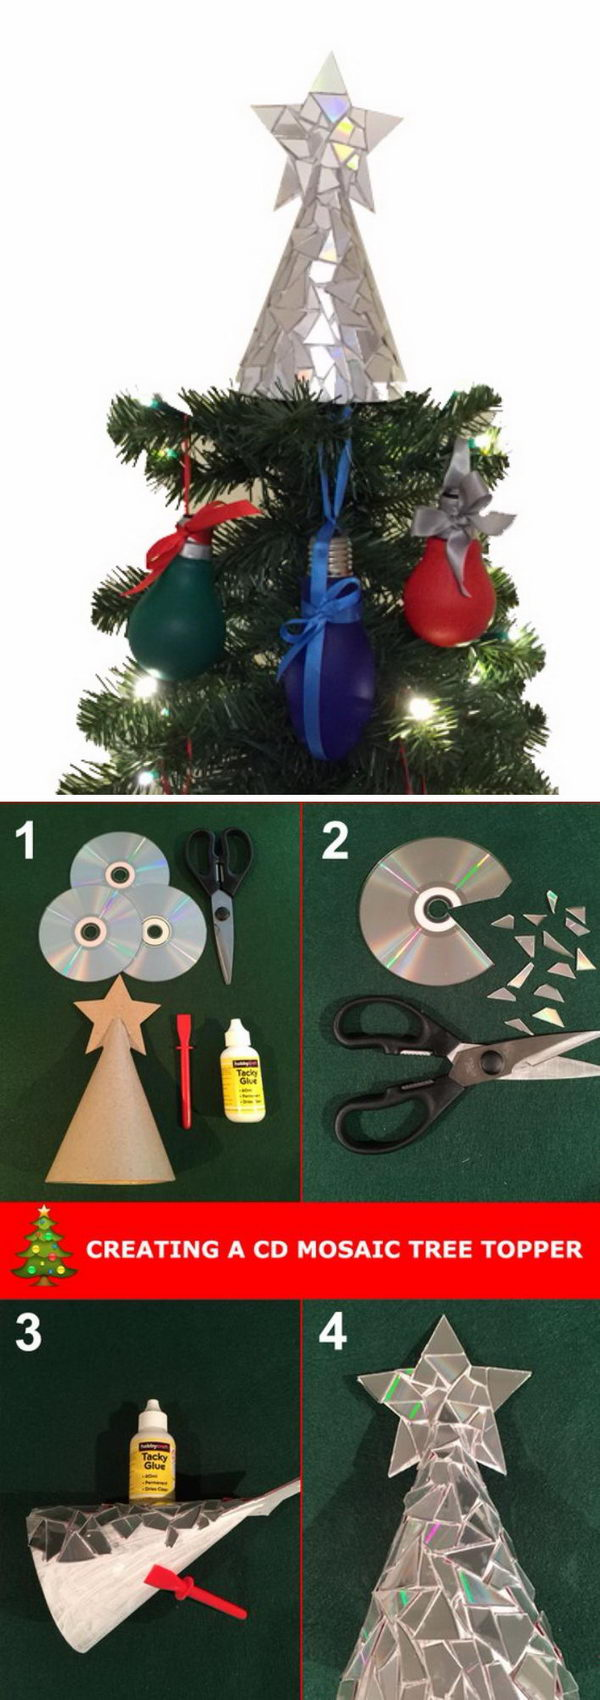 sparkly cd mosaic christmas tree topper - How To Make A Christmas Tree Topper